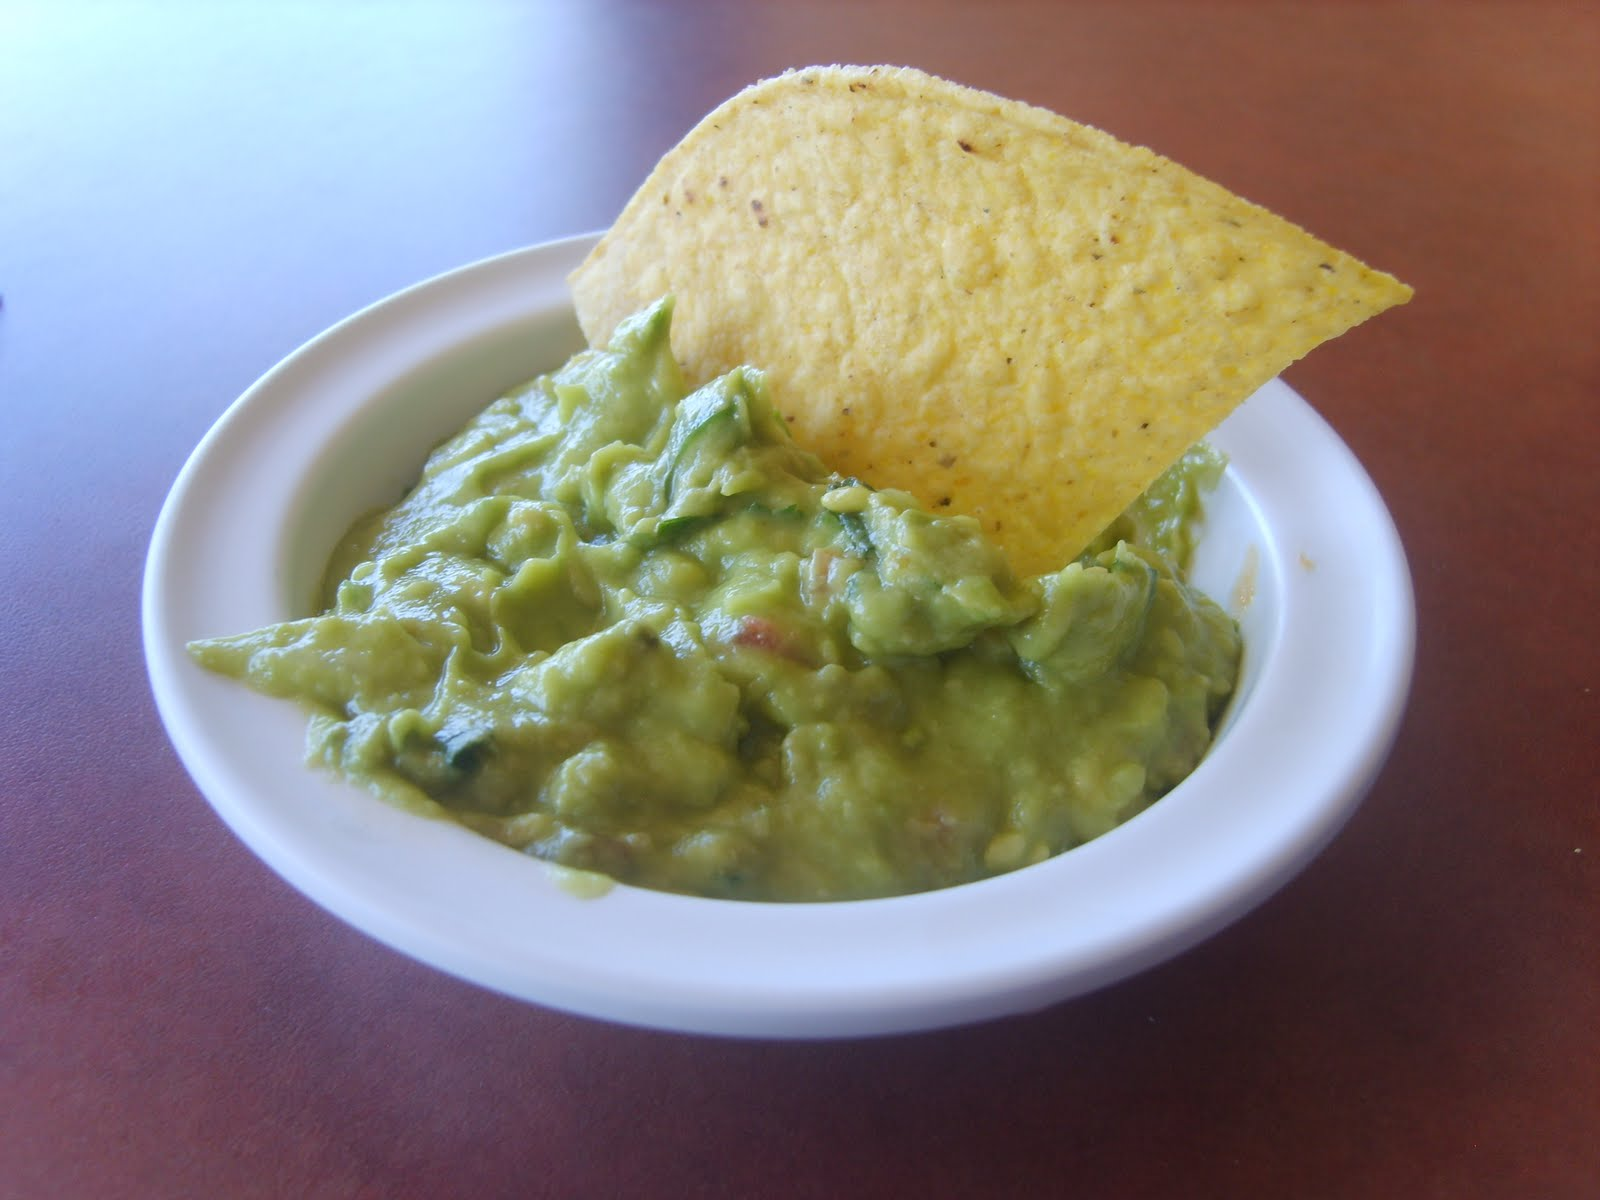 Guacamole dip in a small bowl